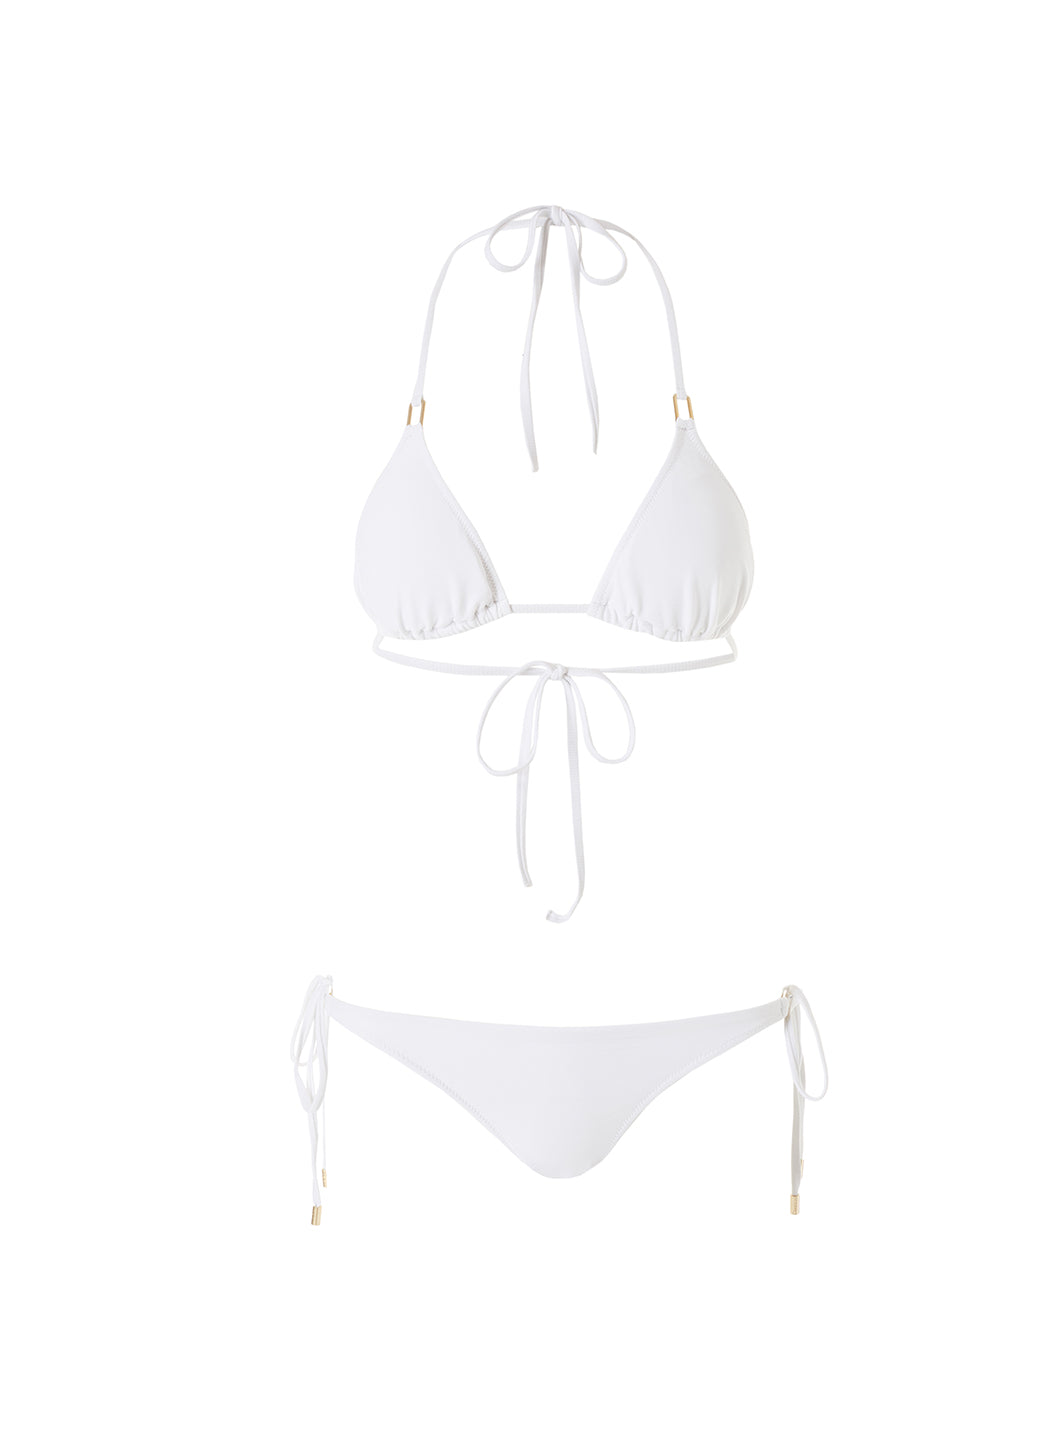 Exclusive Cancun White Ribbed Classic Triangle Bikini